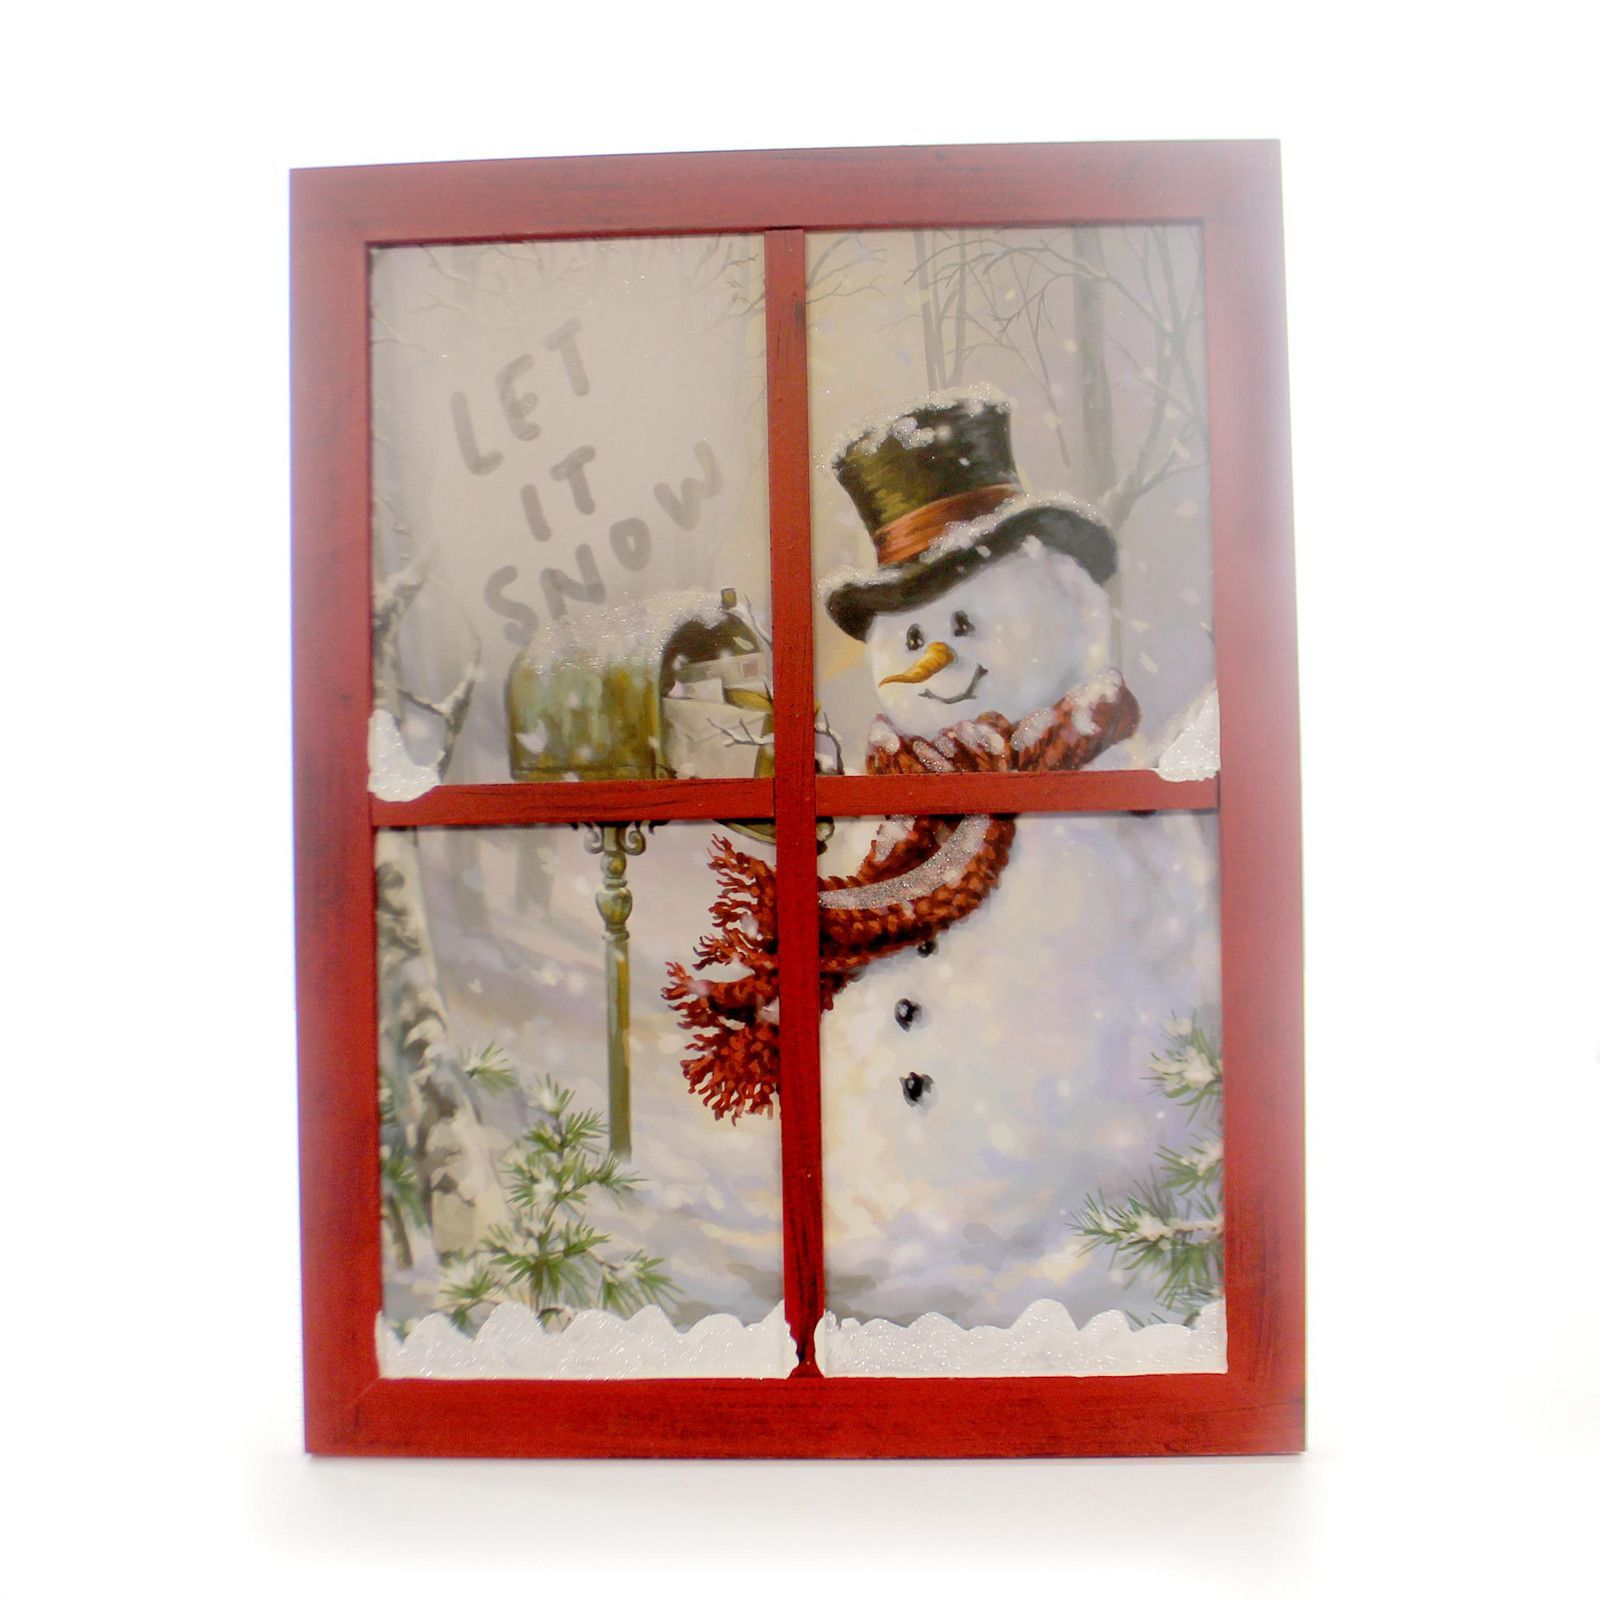 Christmas SNOWMAN AT MAILBOW WINDOW SCENE Wood Christmas 9728838 ...